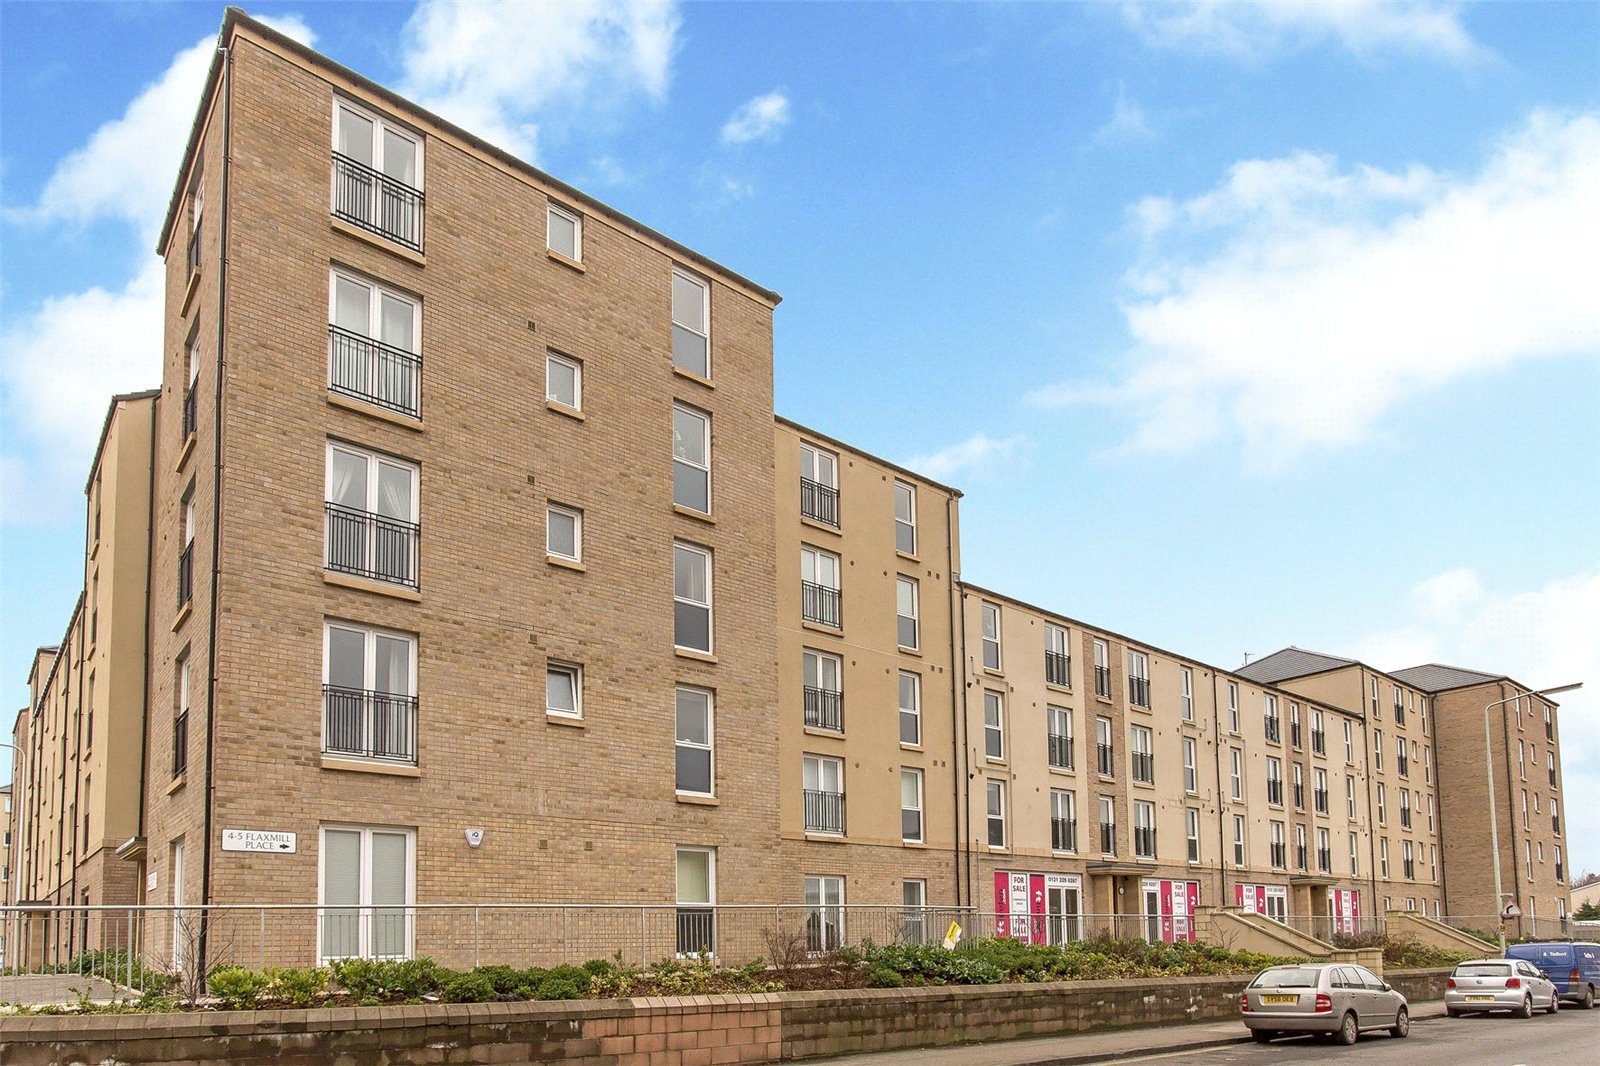 Edinburgh Property of the Week: 5/5 Flaxmill Place